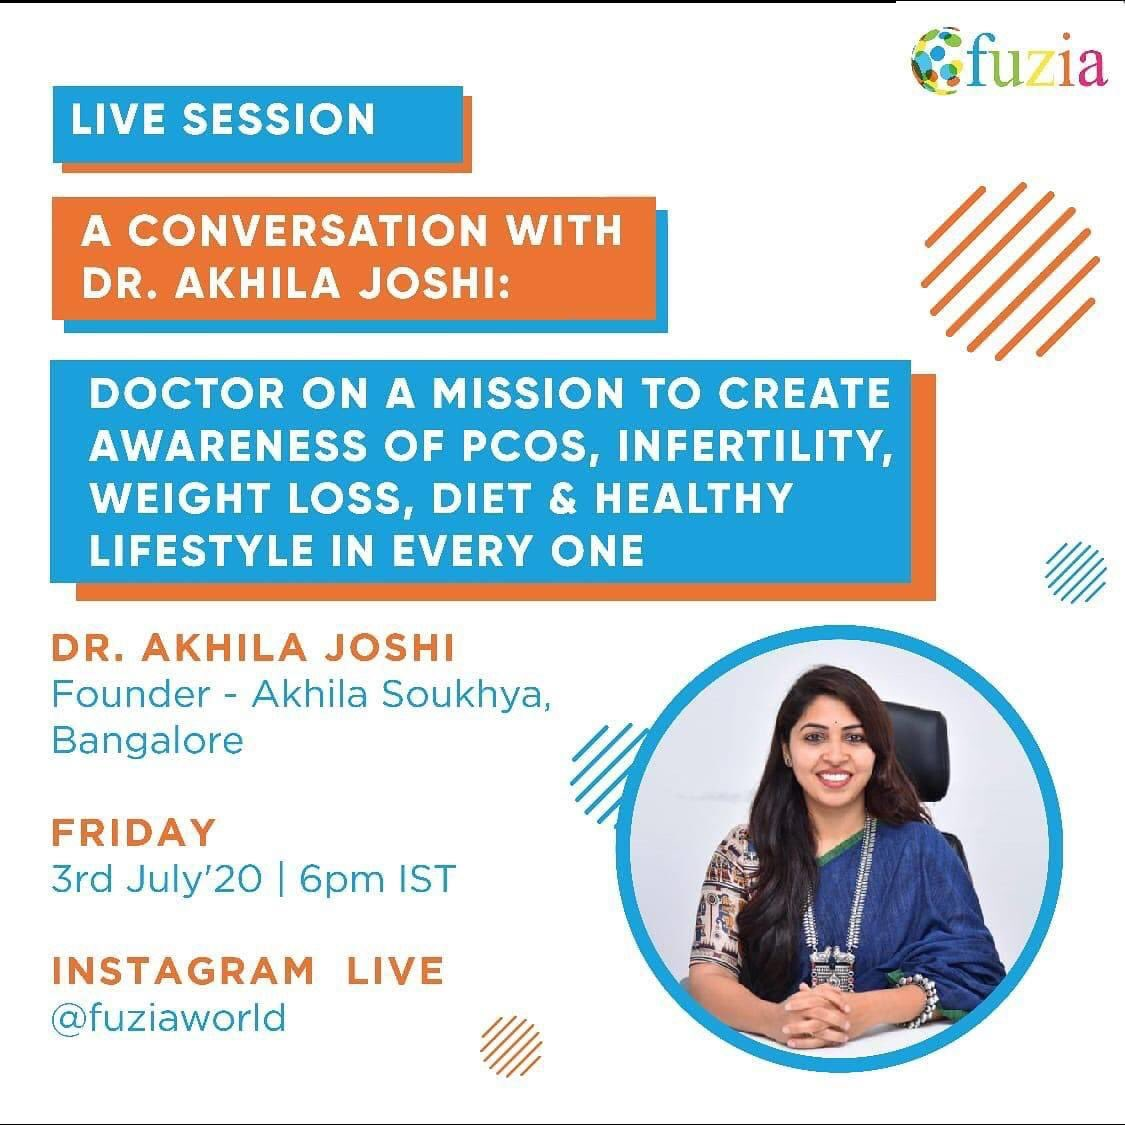 Fuzia On Twitter Fuzia Is Organising A Live Session With Dr Akhila Joshi To Create Awareness On Pcos Infertility Weight Loss Etc For Every One She S Among India S Top 25 And World S